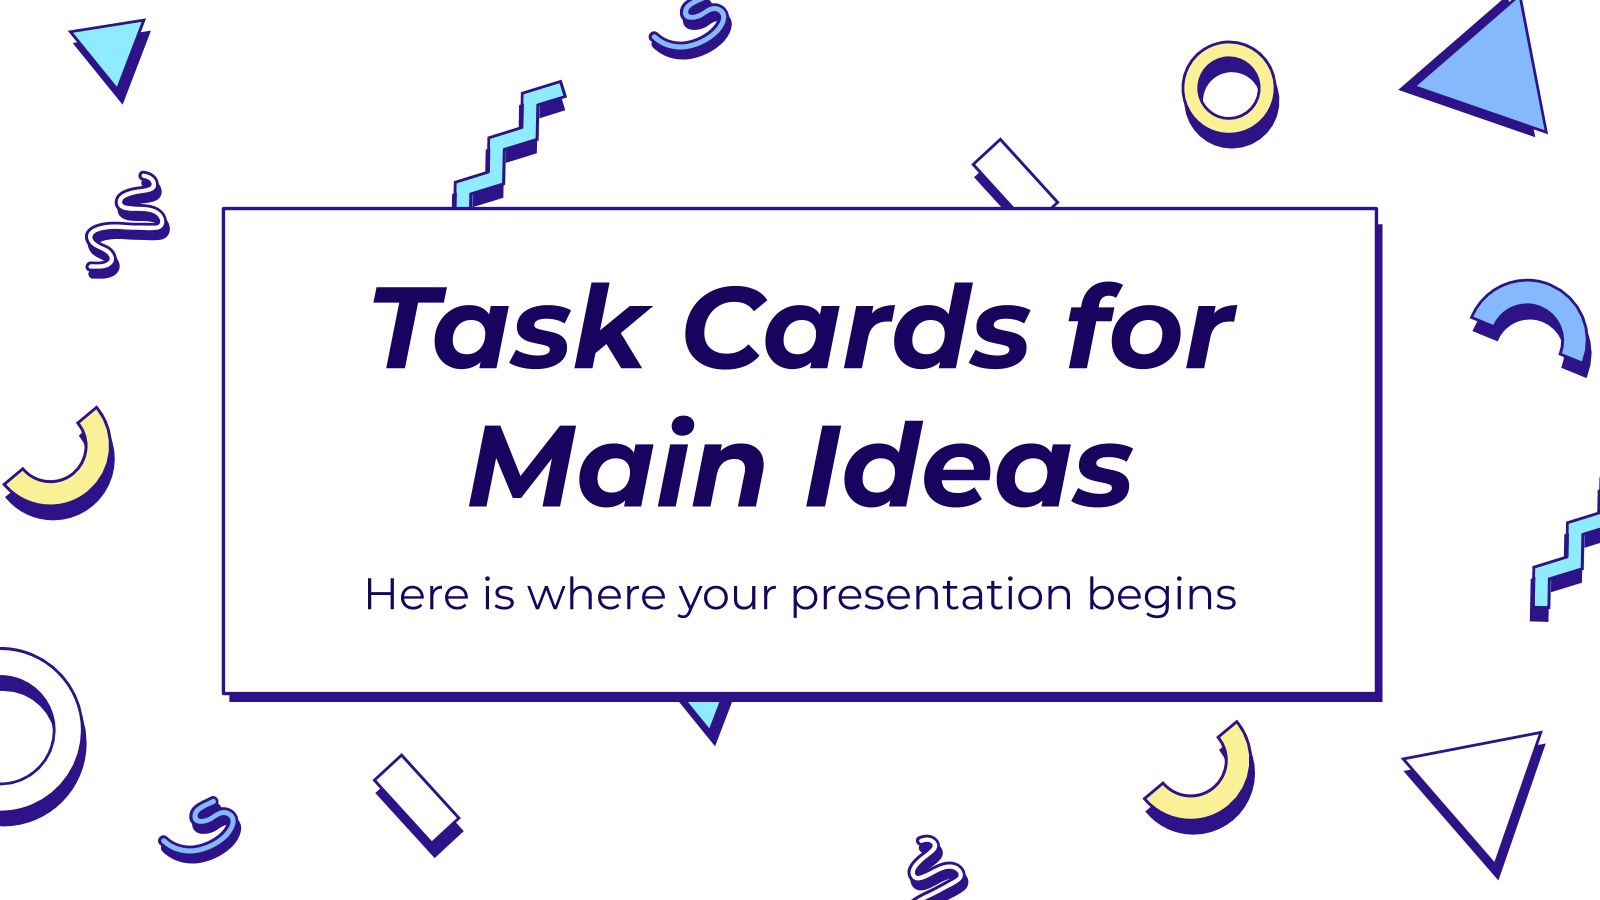 Task Cards for Main Ideas presentation template